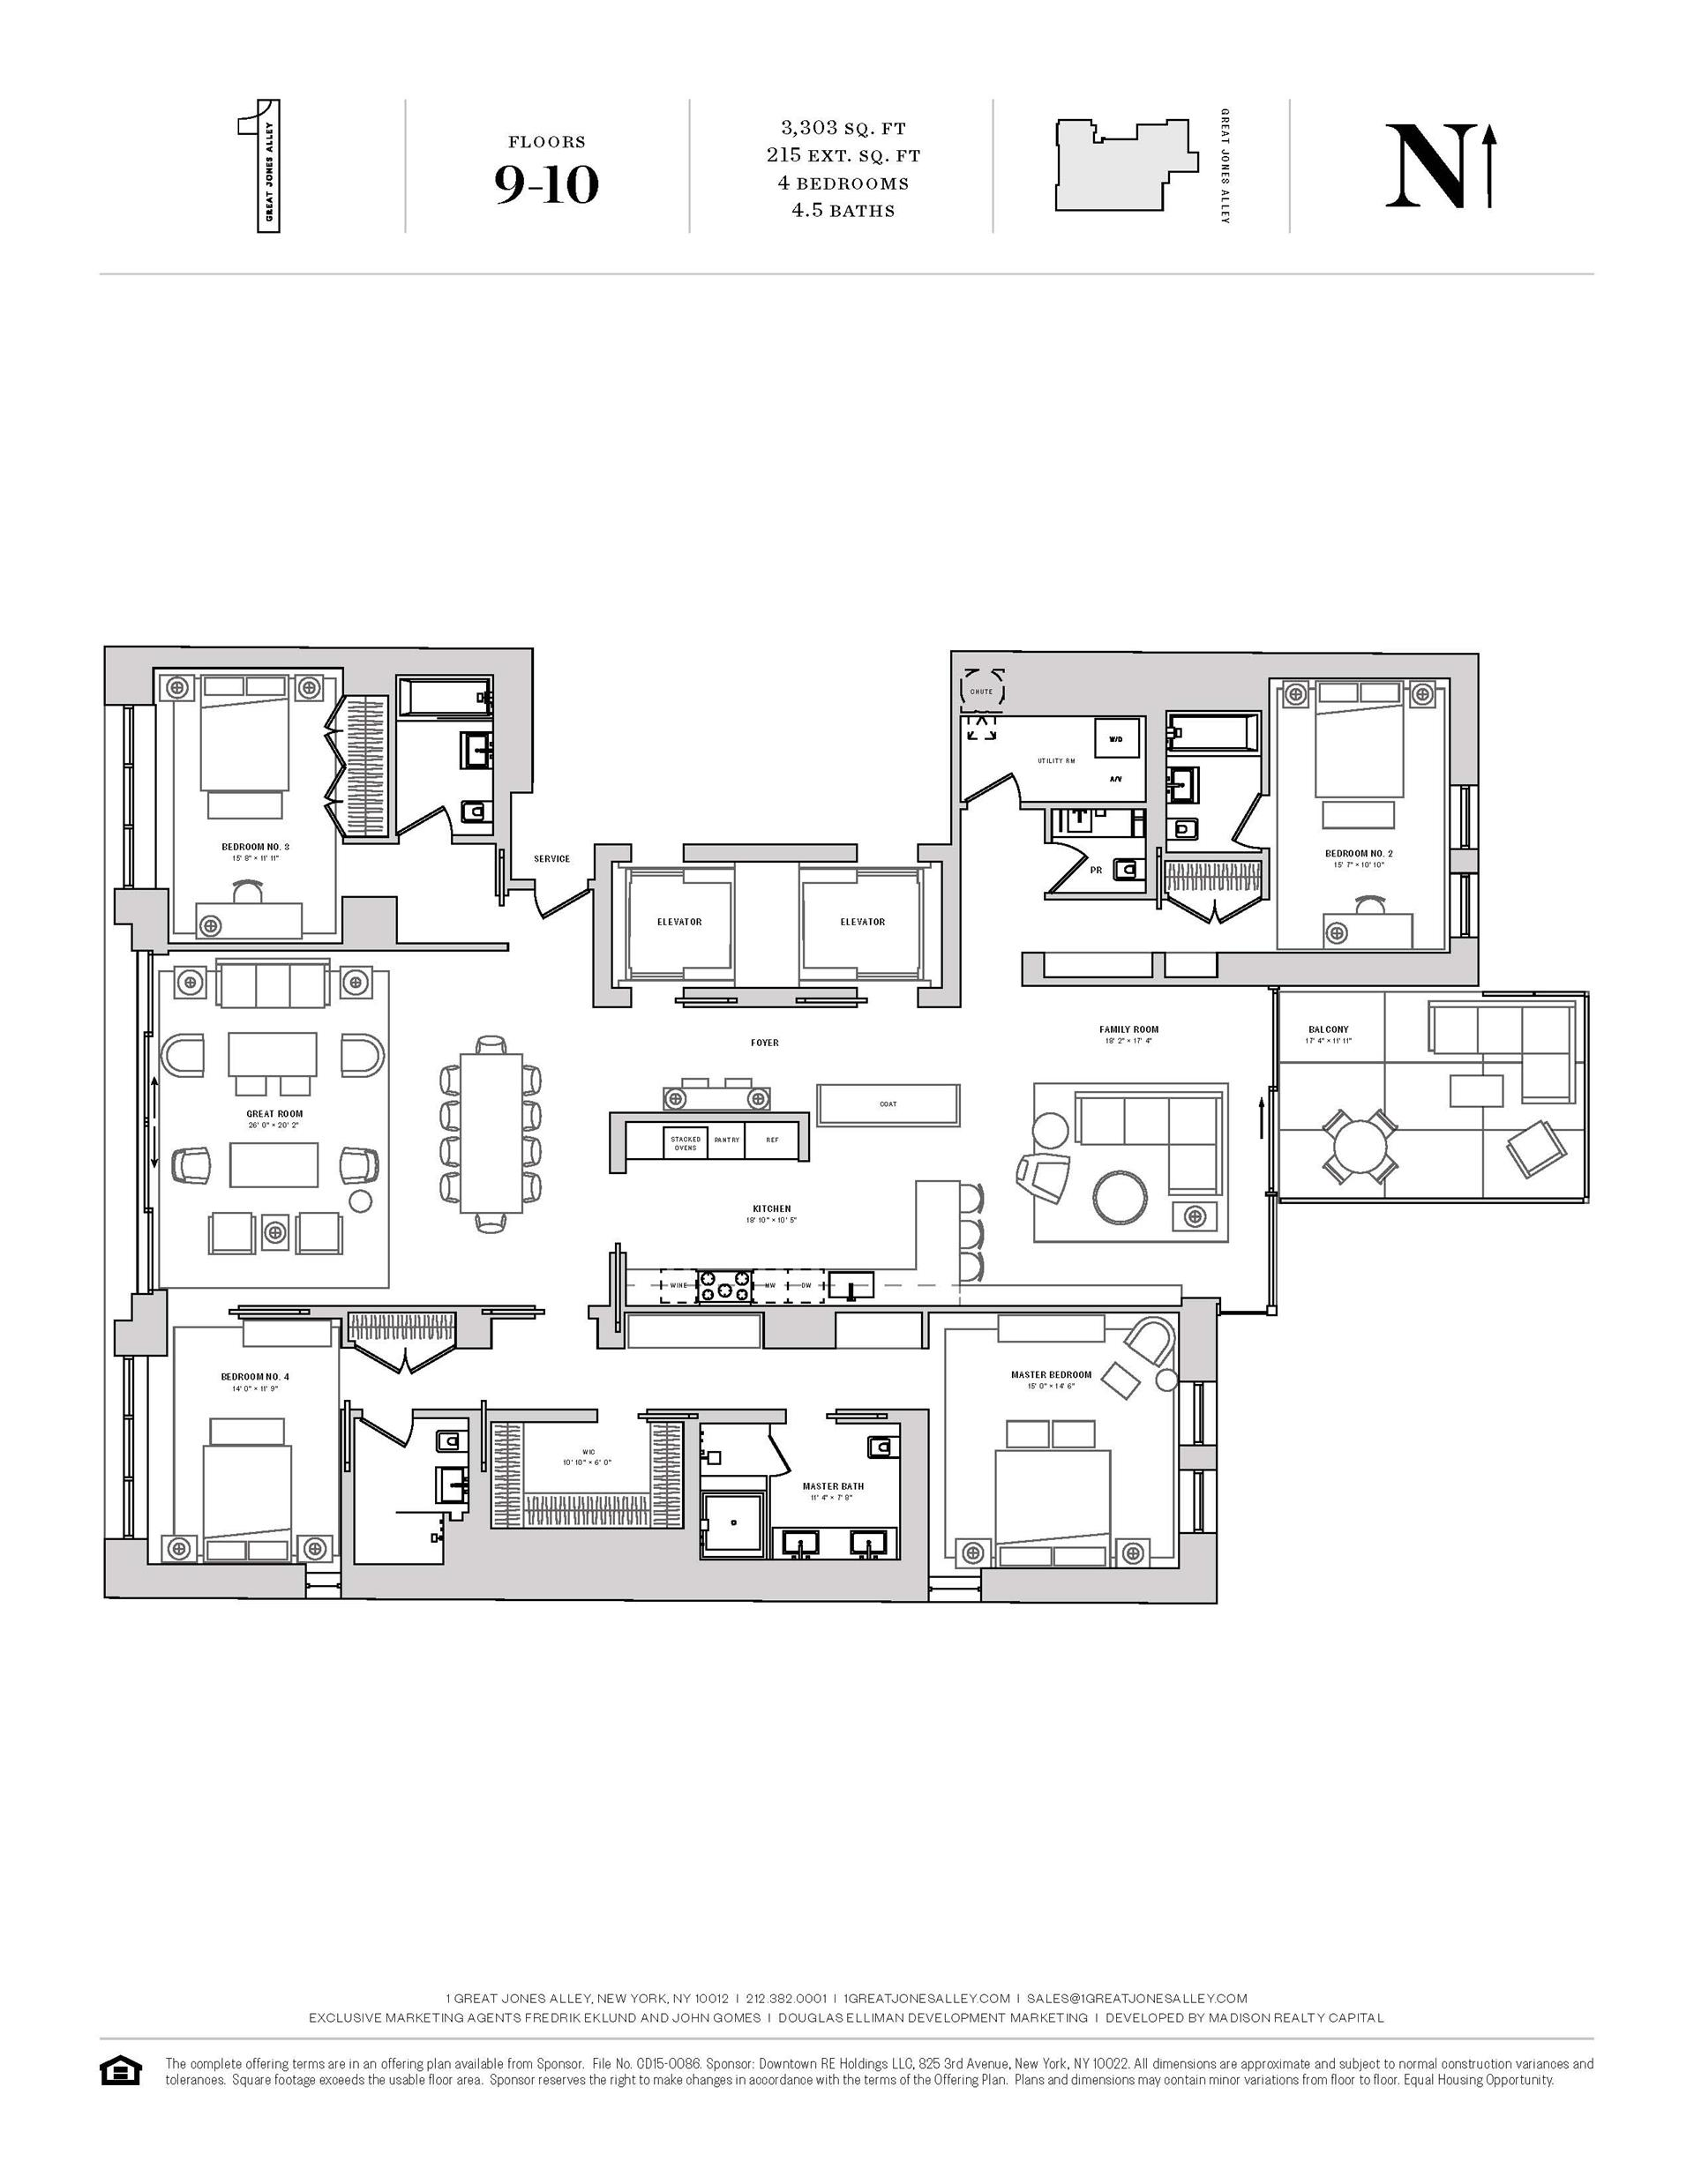 Floor plan of 1 Great Jones Alley, 10 - NoHo, New York